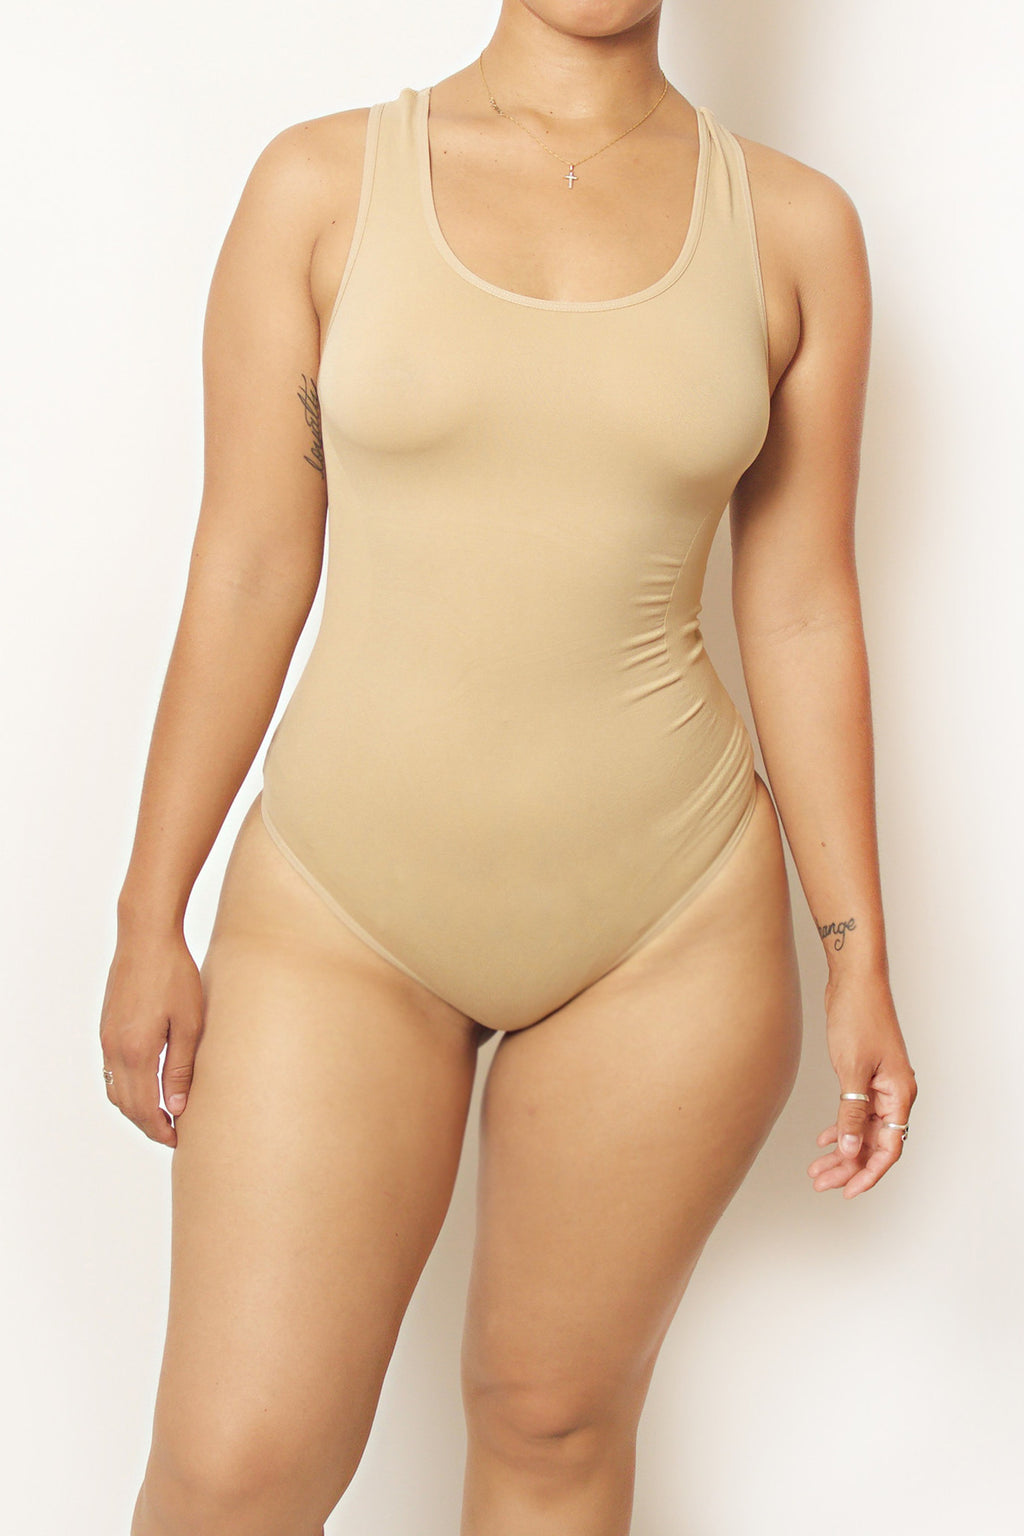 Nude Body By Babes Thong Bodysuit w/ Tummy Control - Babes And Felines | Specializing in Fashionable Staple Pieces for Every Shape and Size